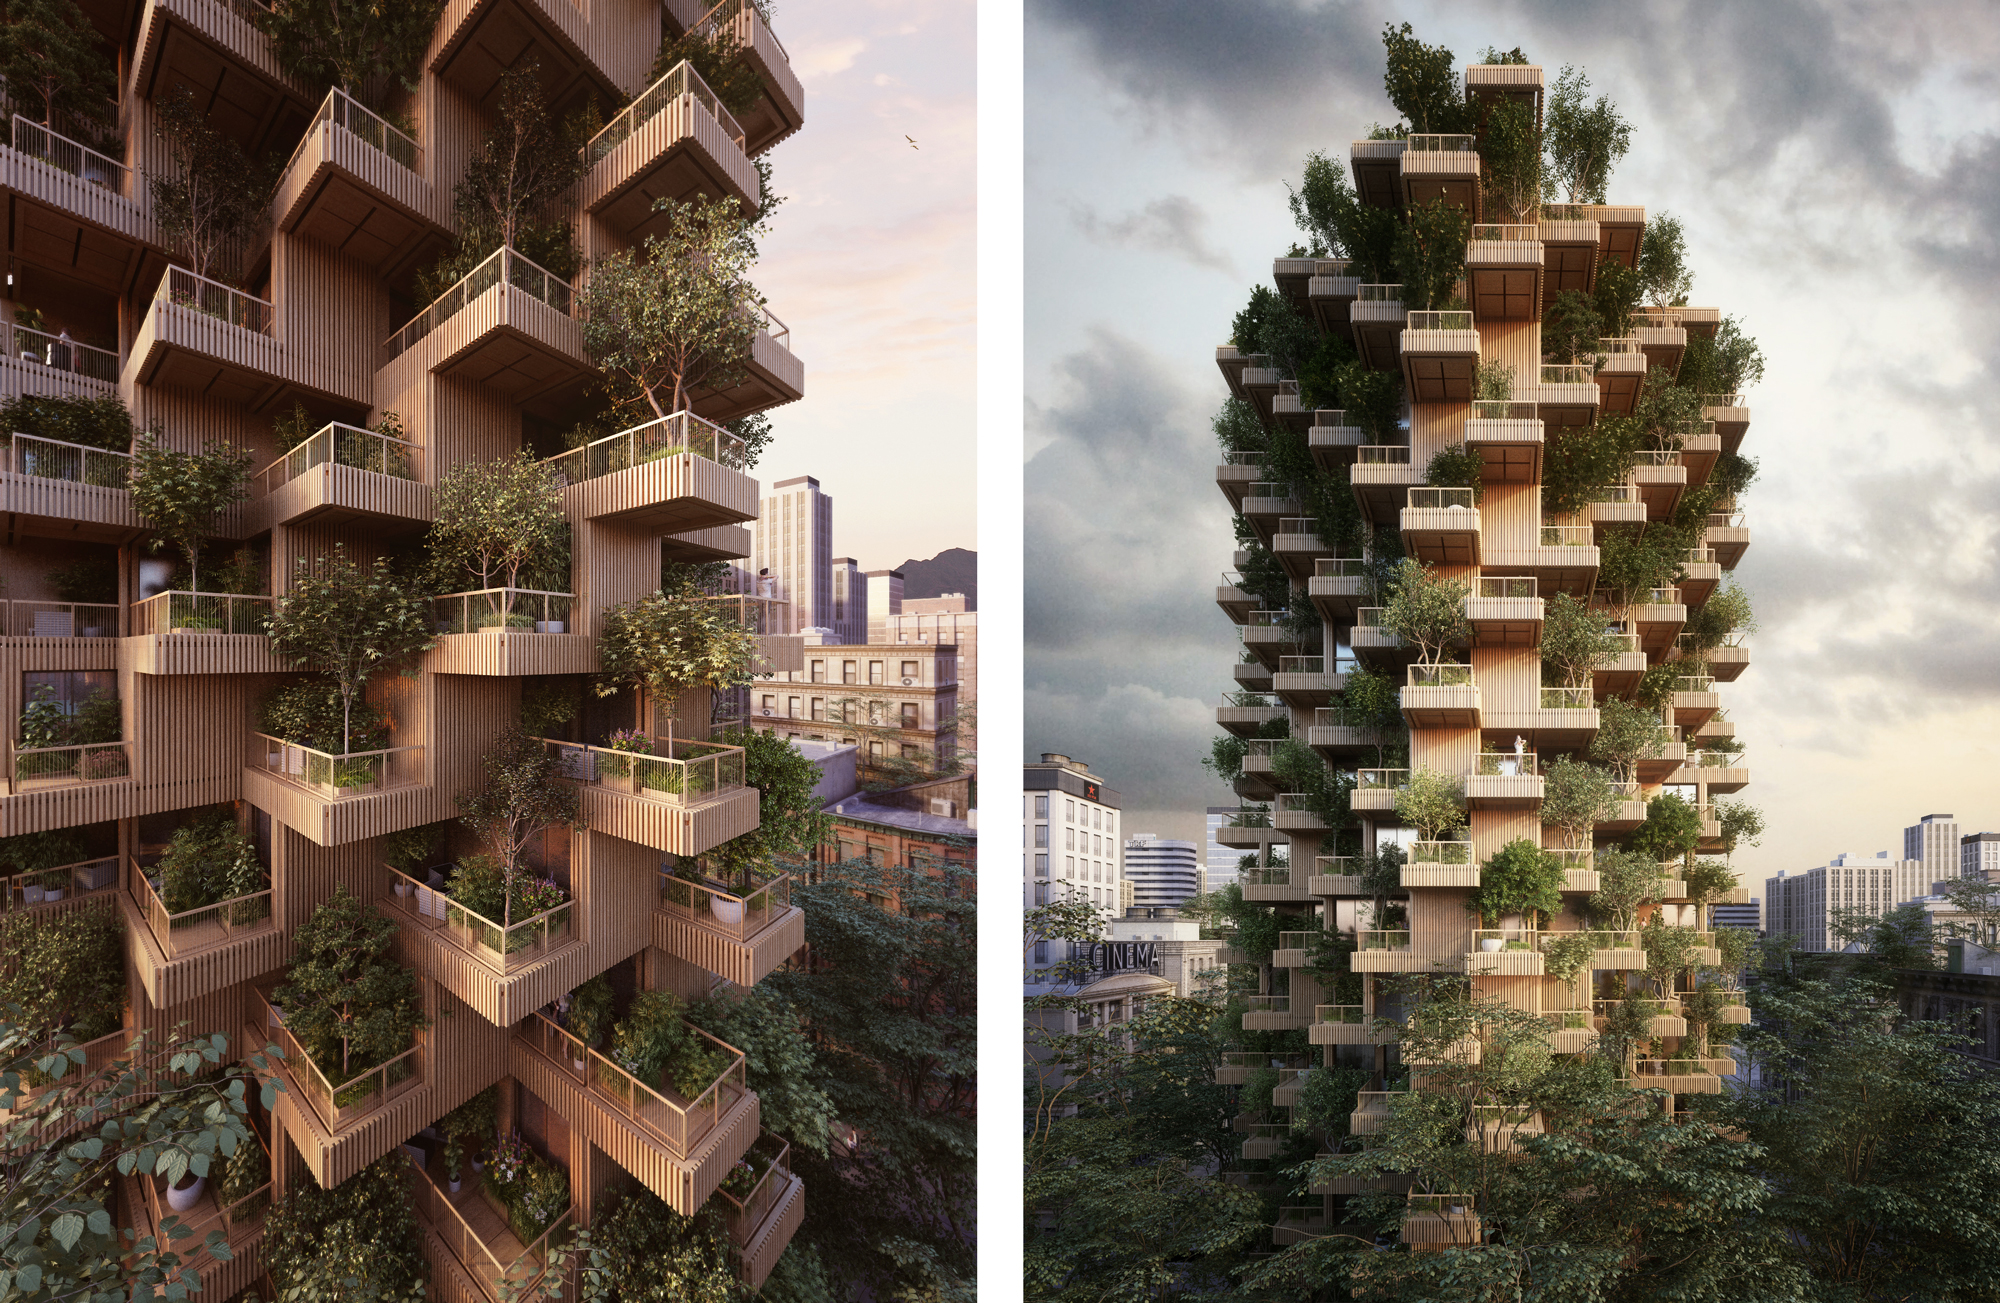 Proposal for the Toronto Tree Tower built from cross-laminated timber modules.